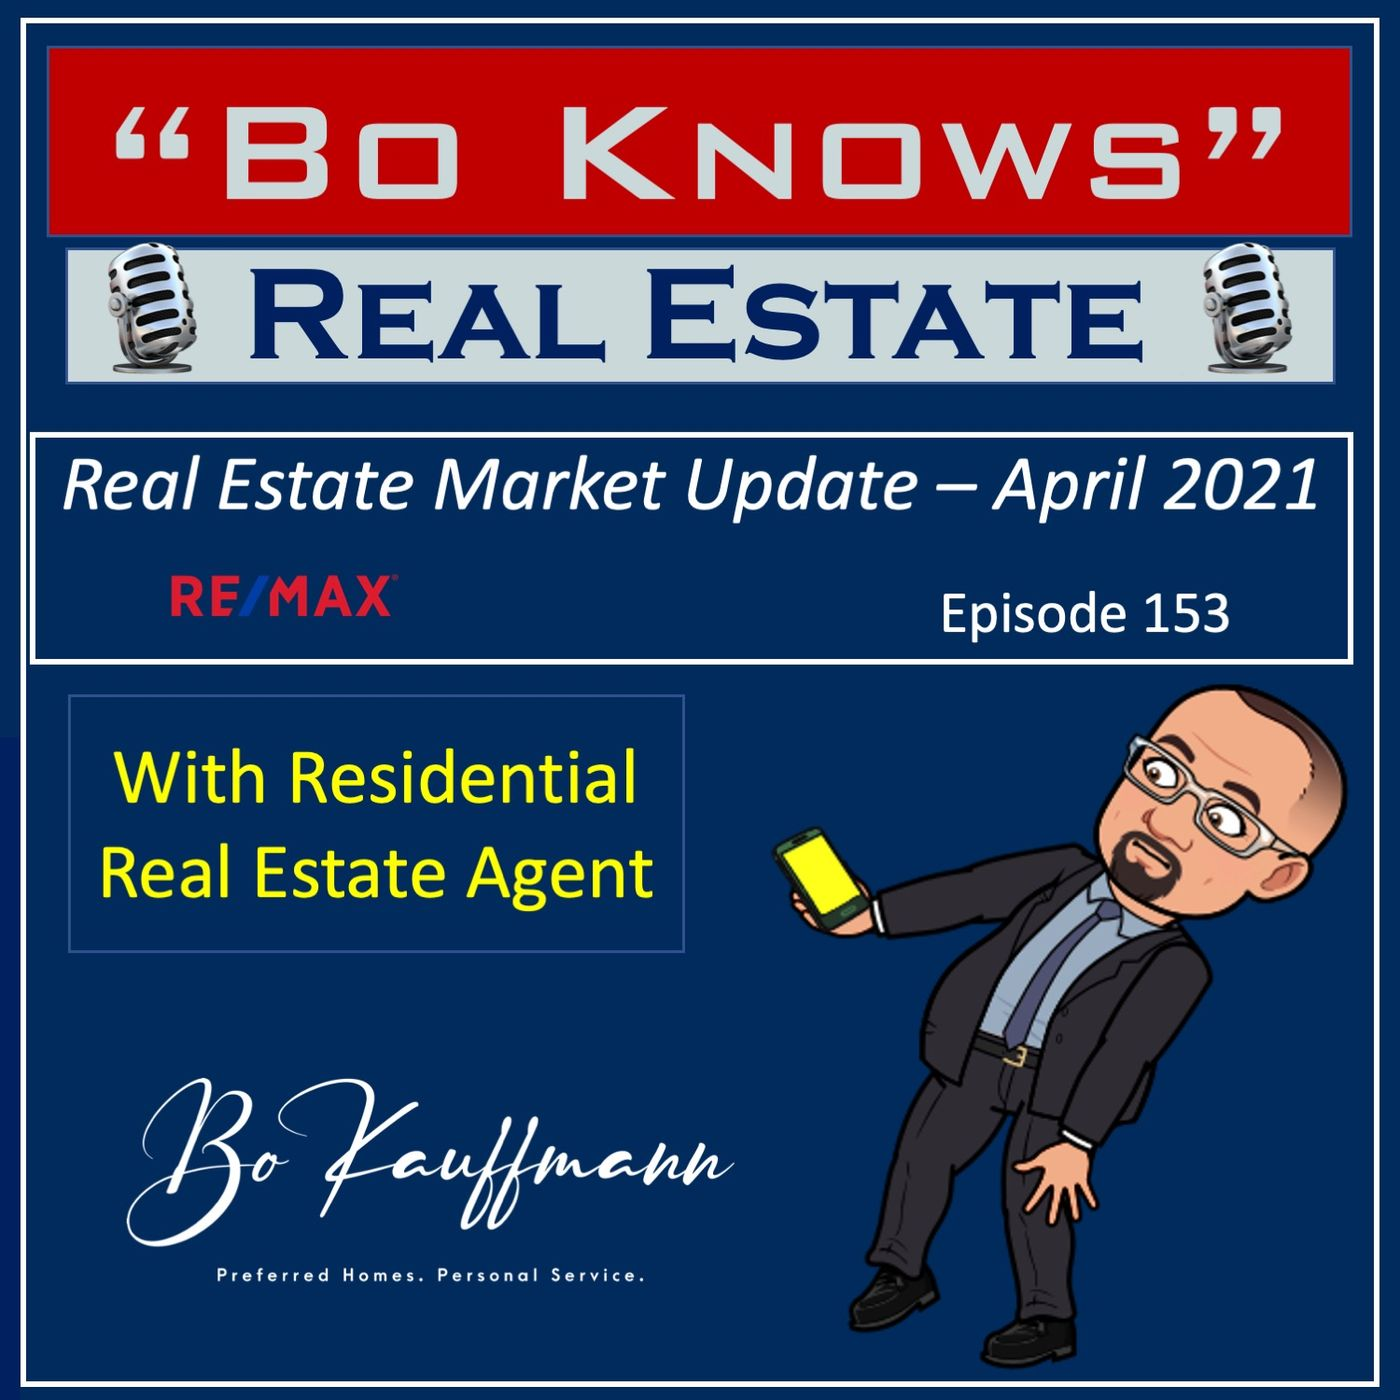 (EP: 153) April 2021 Real Estate Market Update - Winnipeg Housing and Condo Report